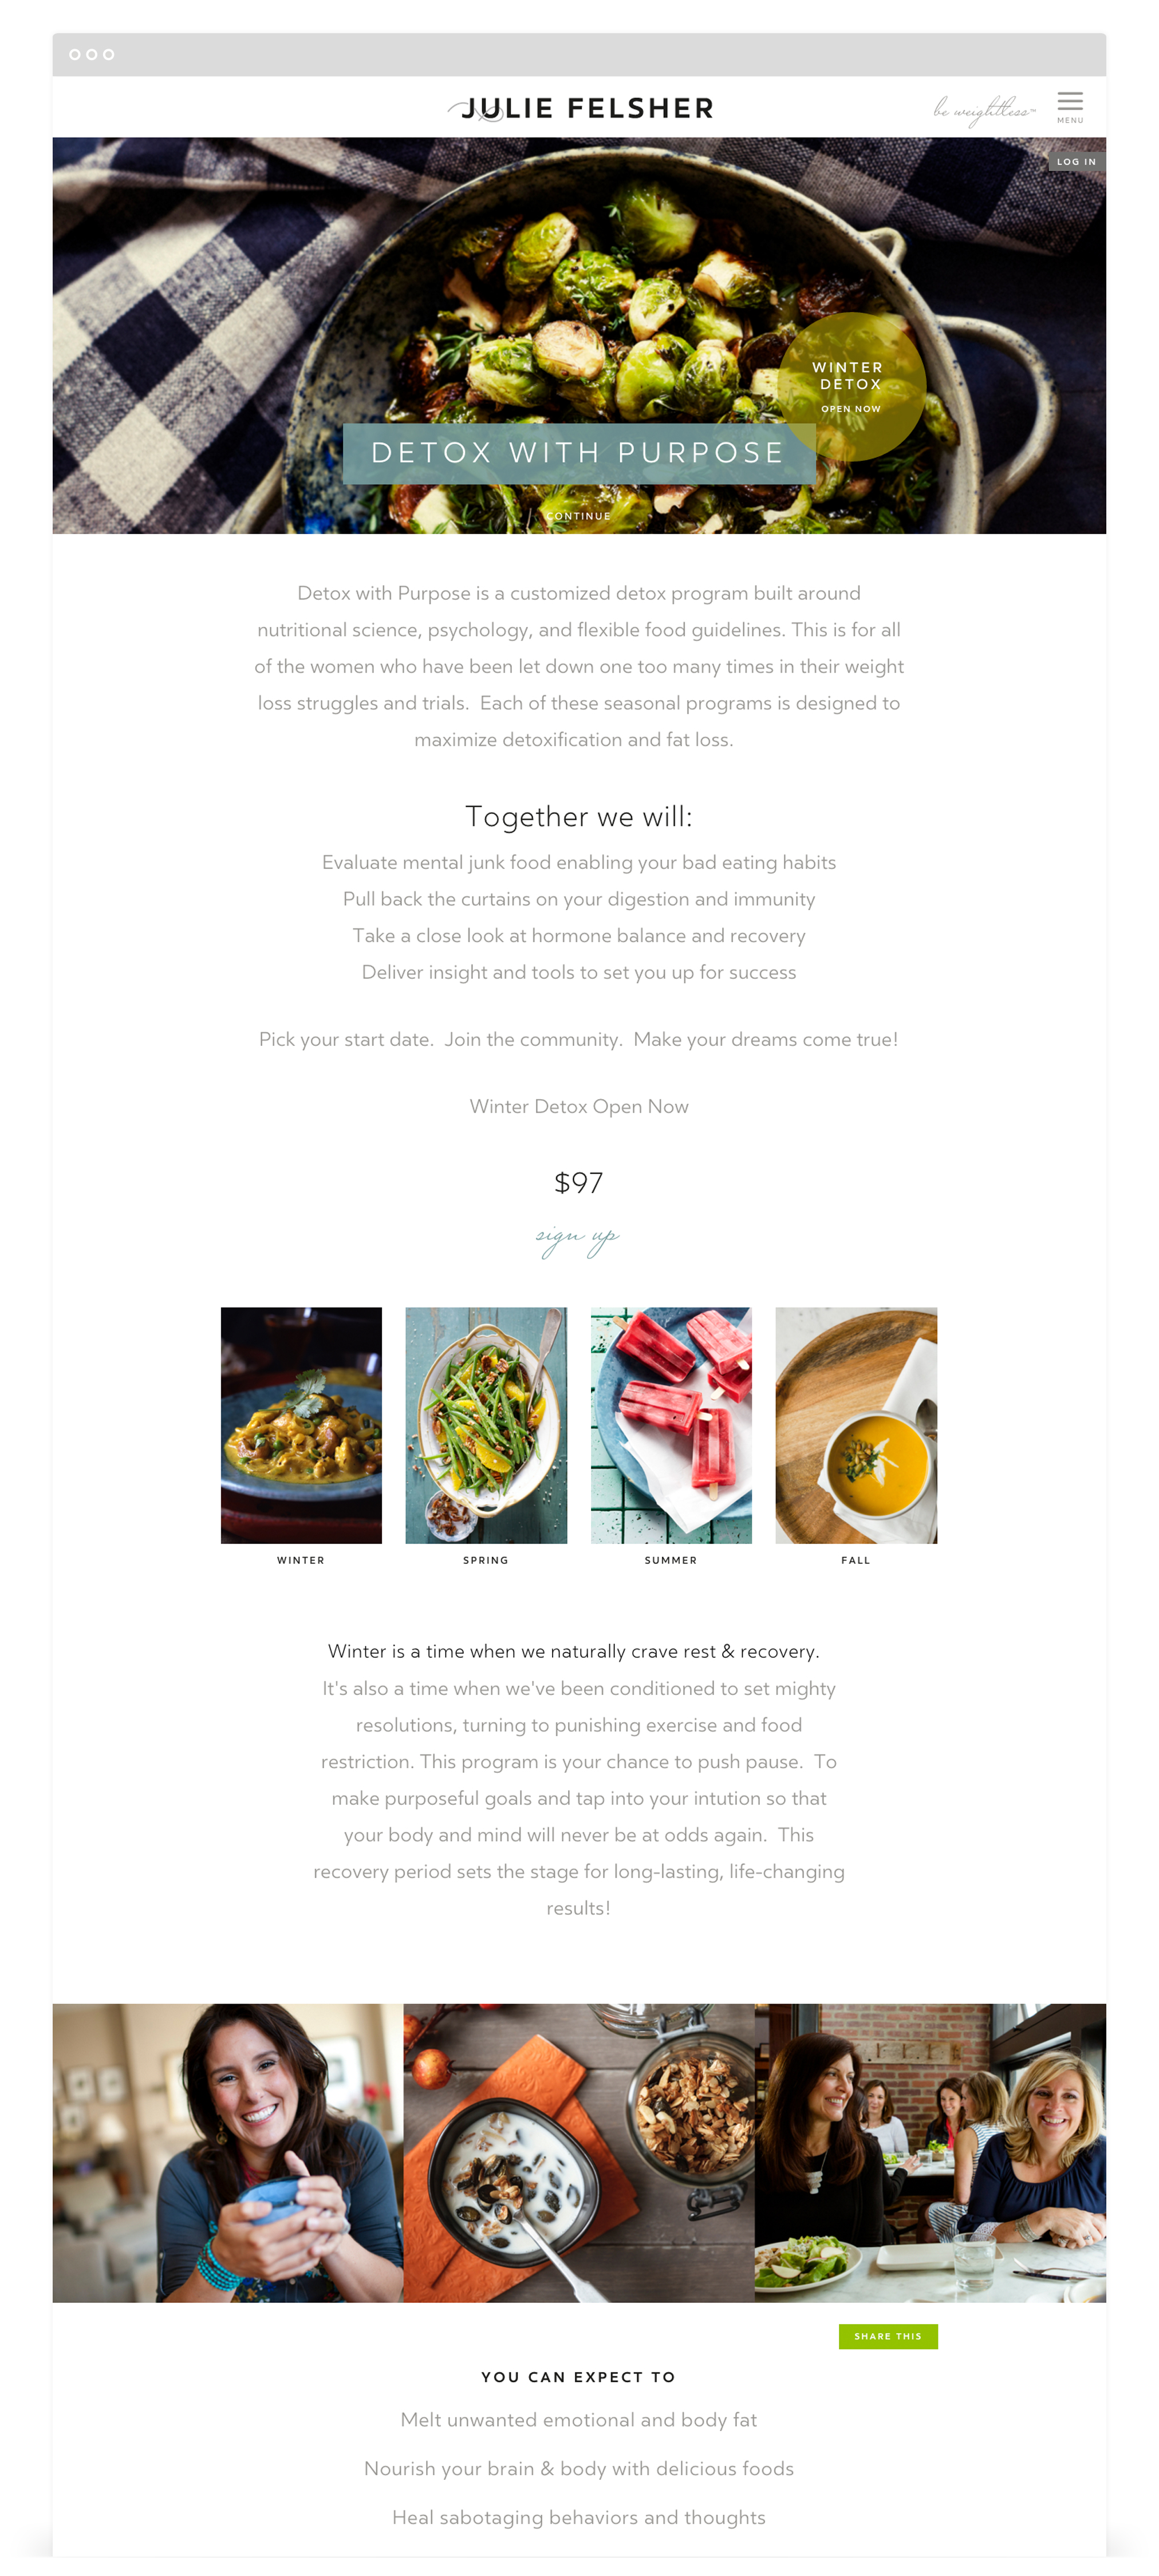 Responsive Web Design by Second + West for Julie Felsher